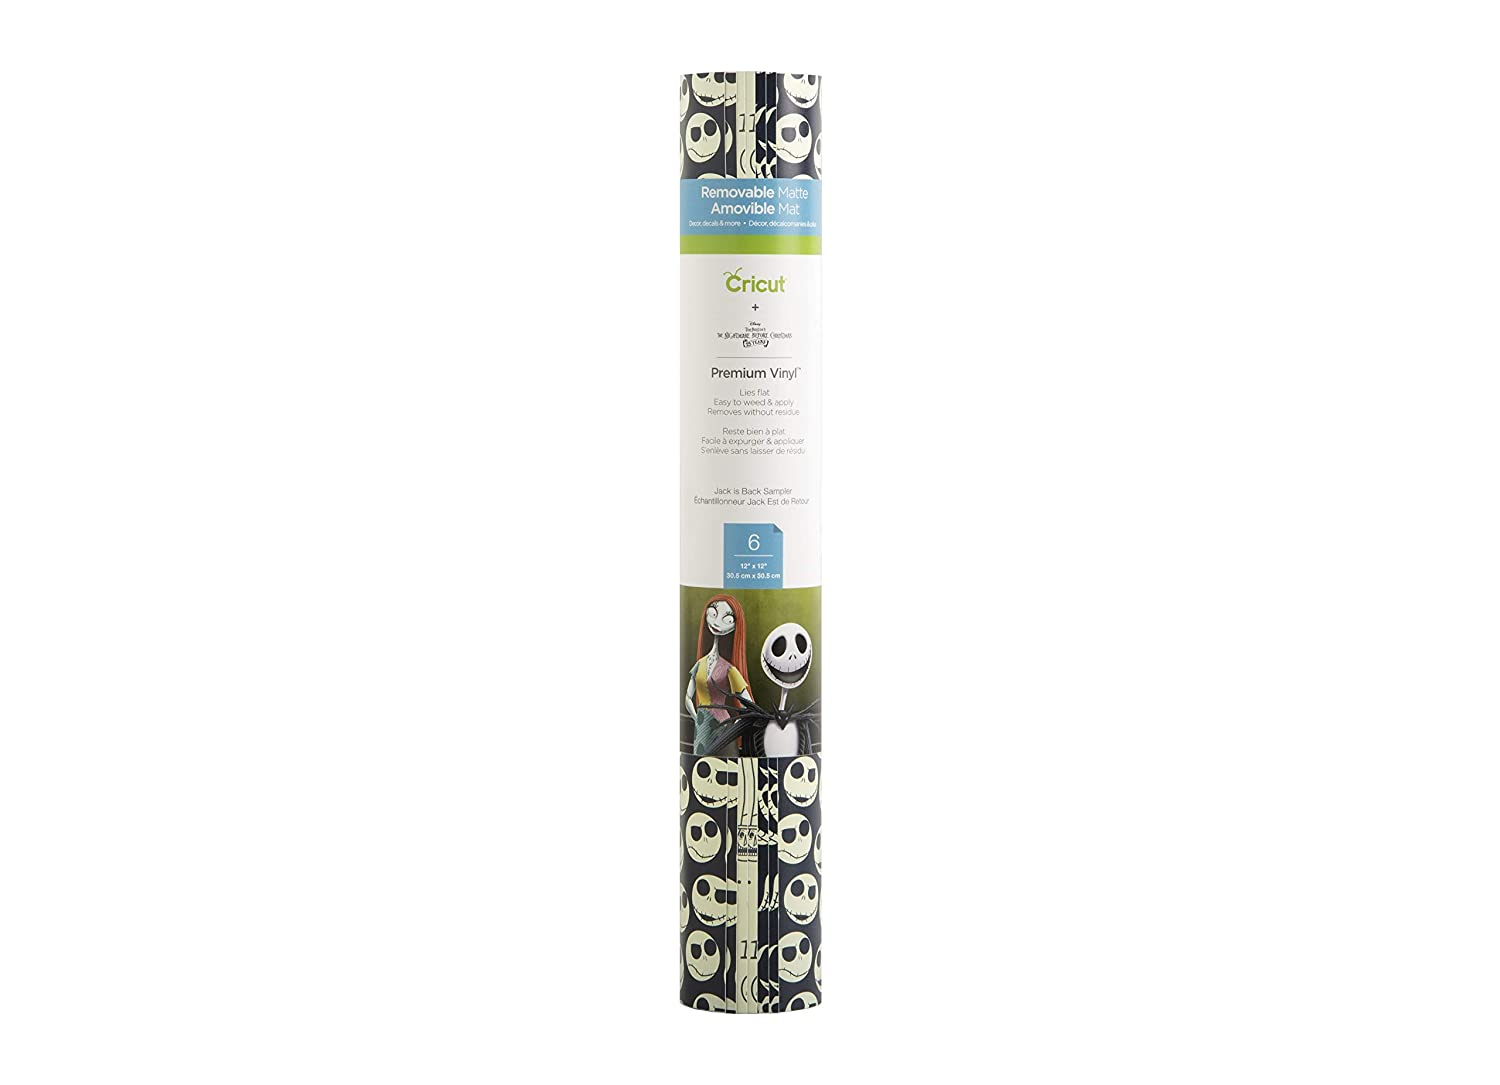 Cricut Patterned Premium Vinyl Removable, Nightmare Before Christmas, Jack Is Back 2005410